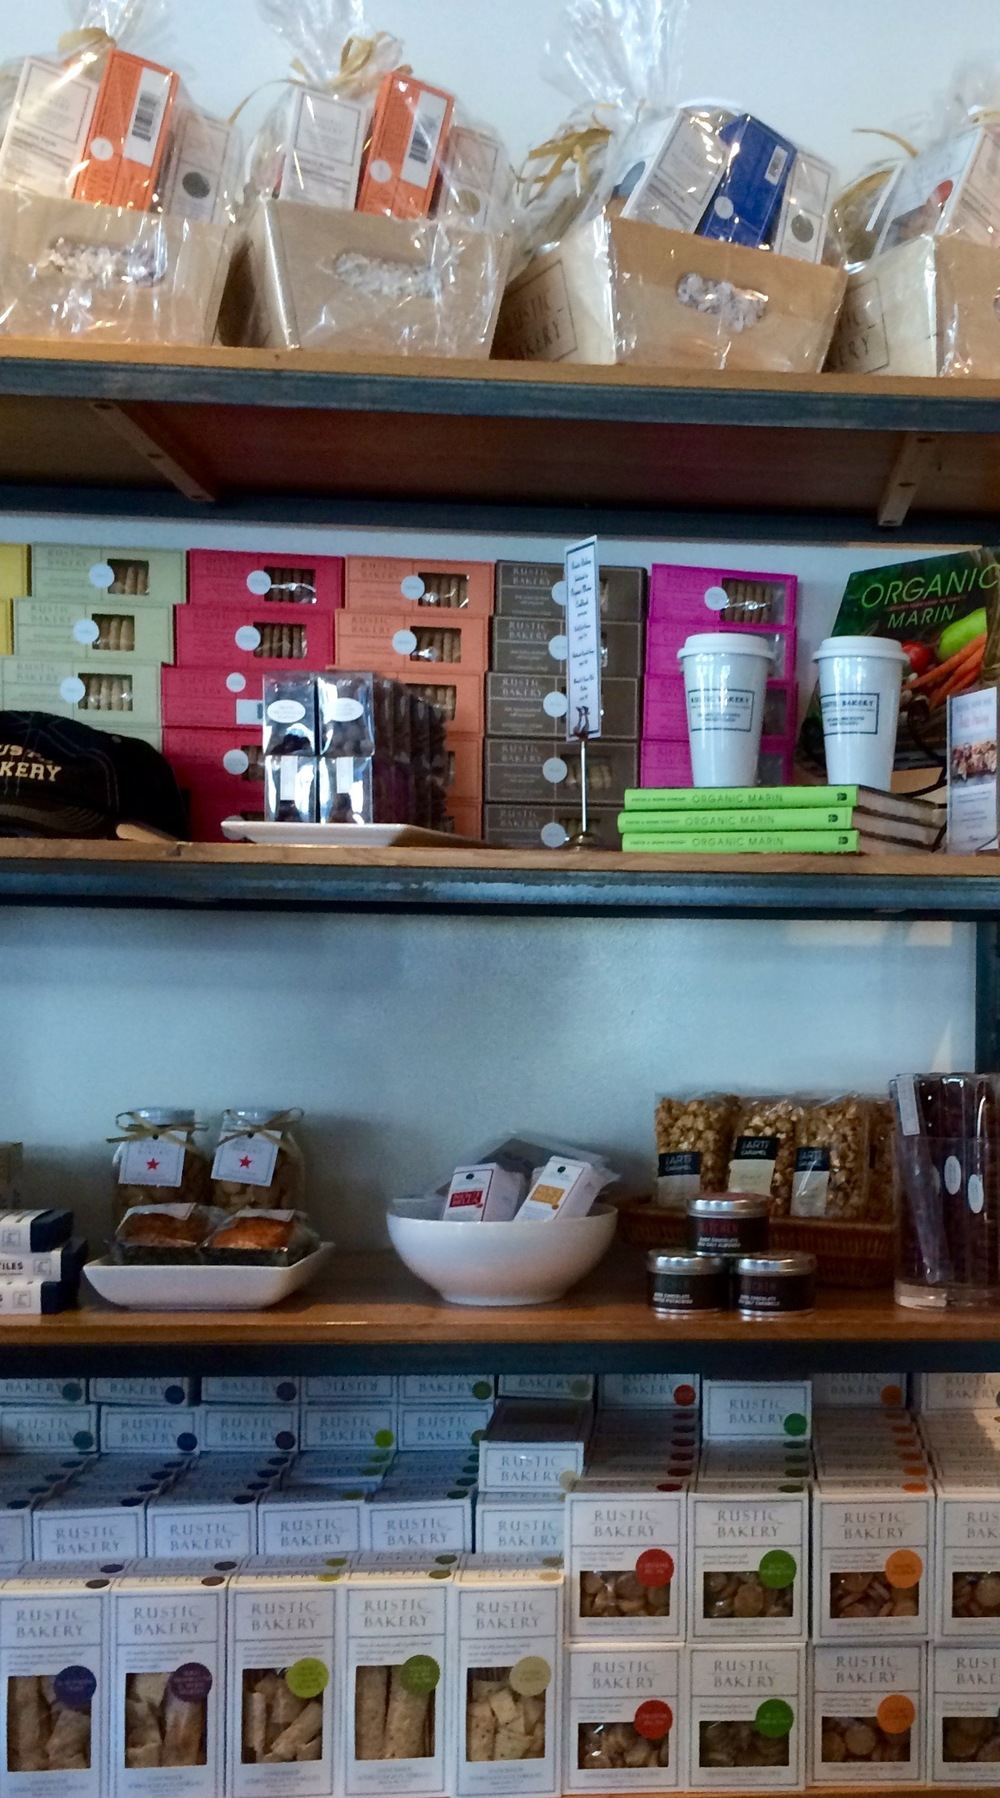 Rustic Bakery's amazing packaged cracker, cookies and more.....